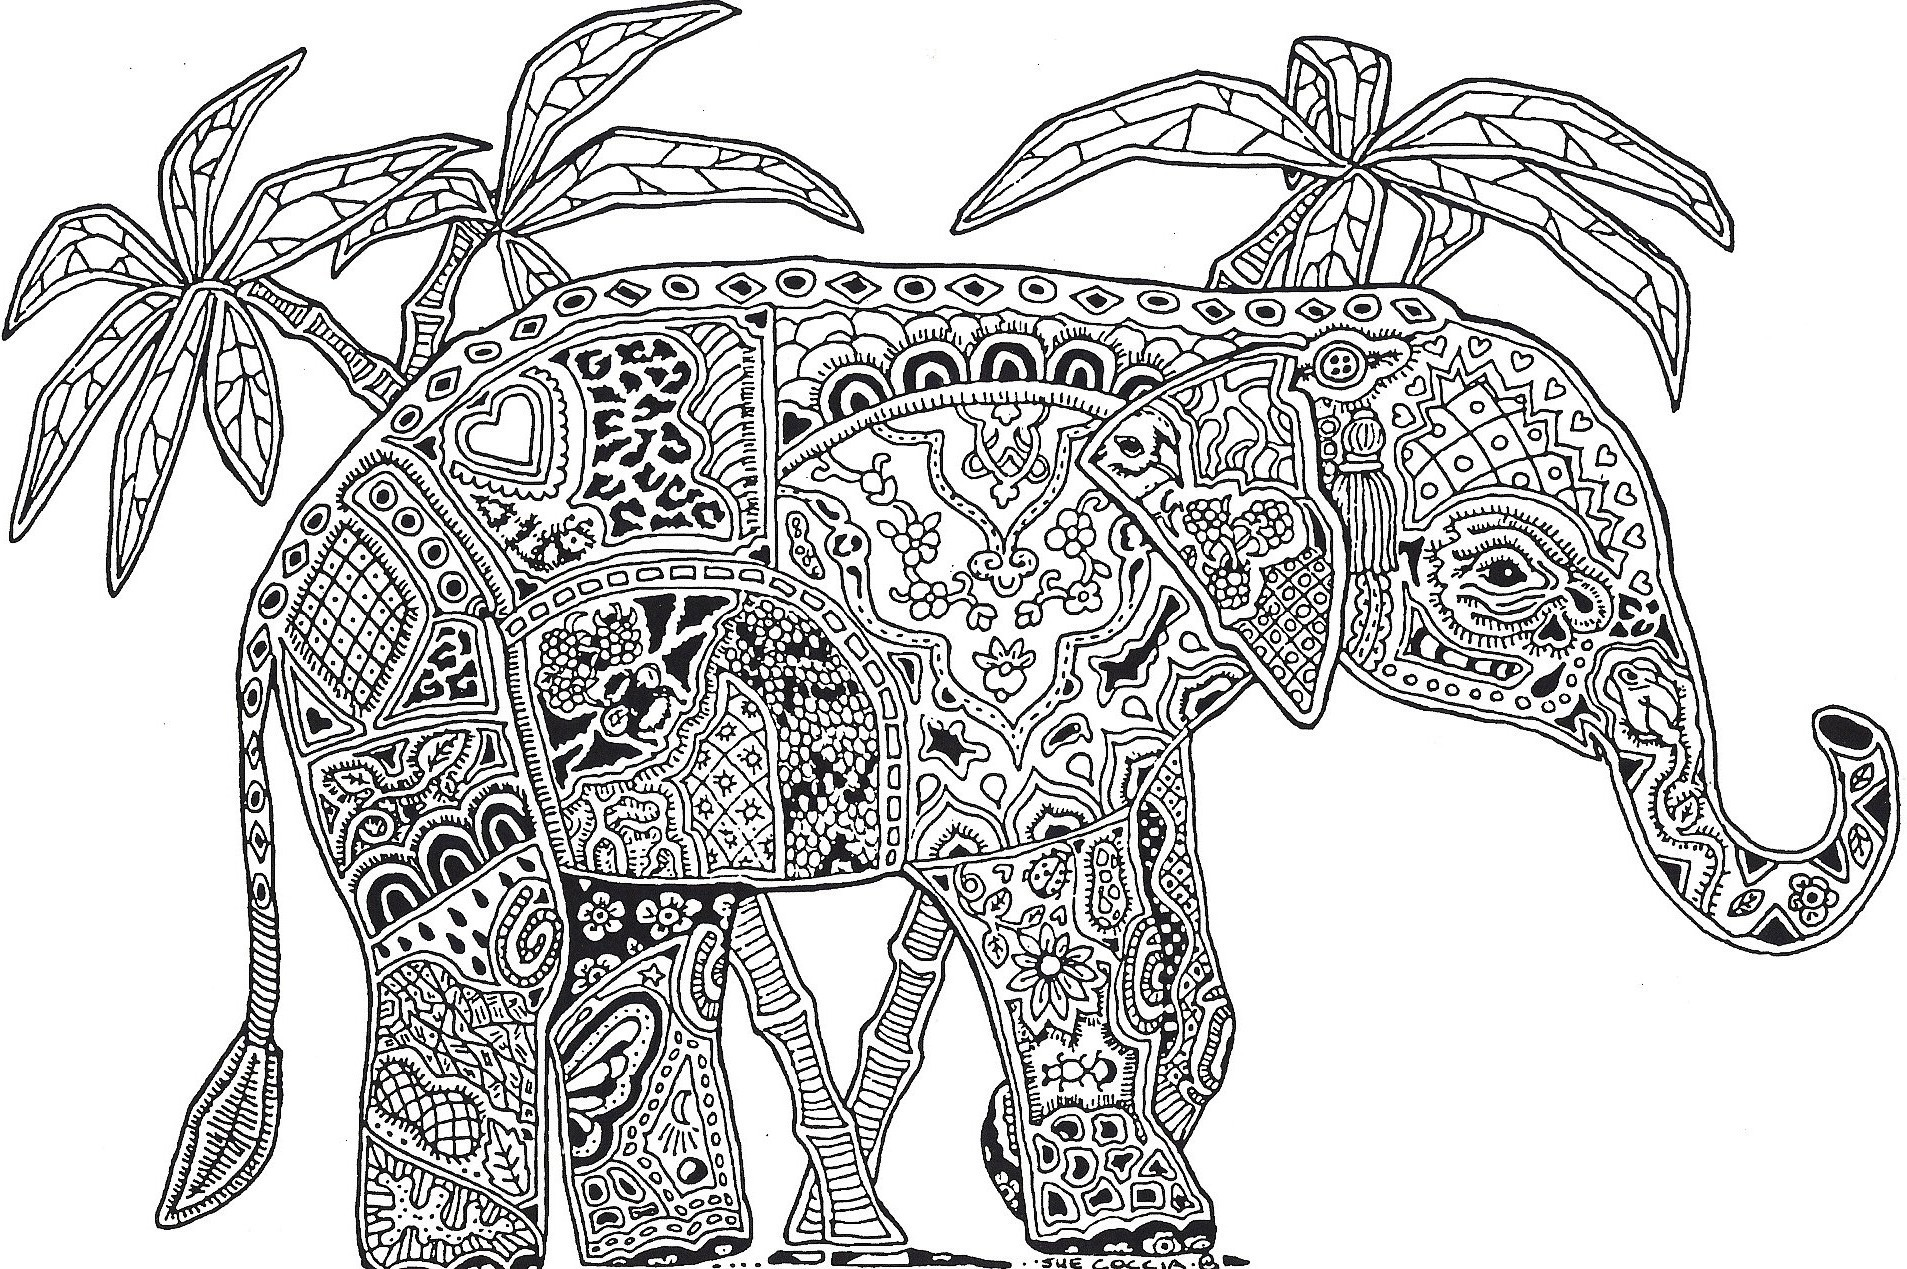 Coloring pages difficult - Difficult Coloring Pages For Adults